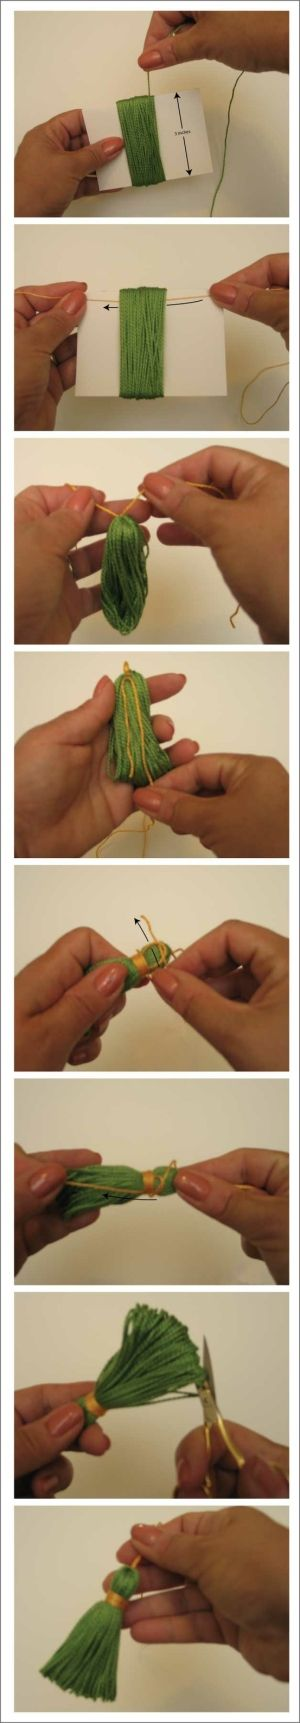 basic tassel tutorial by TinyCarmen